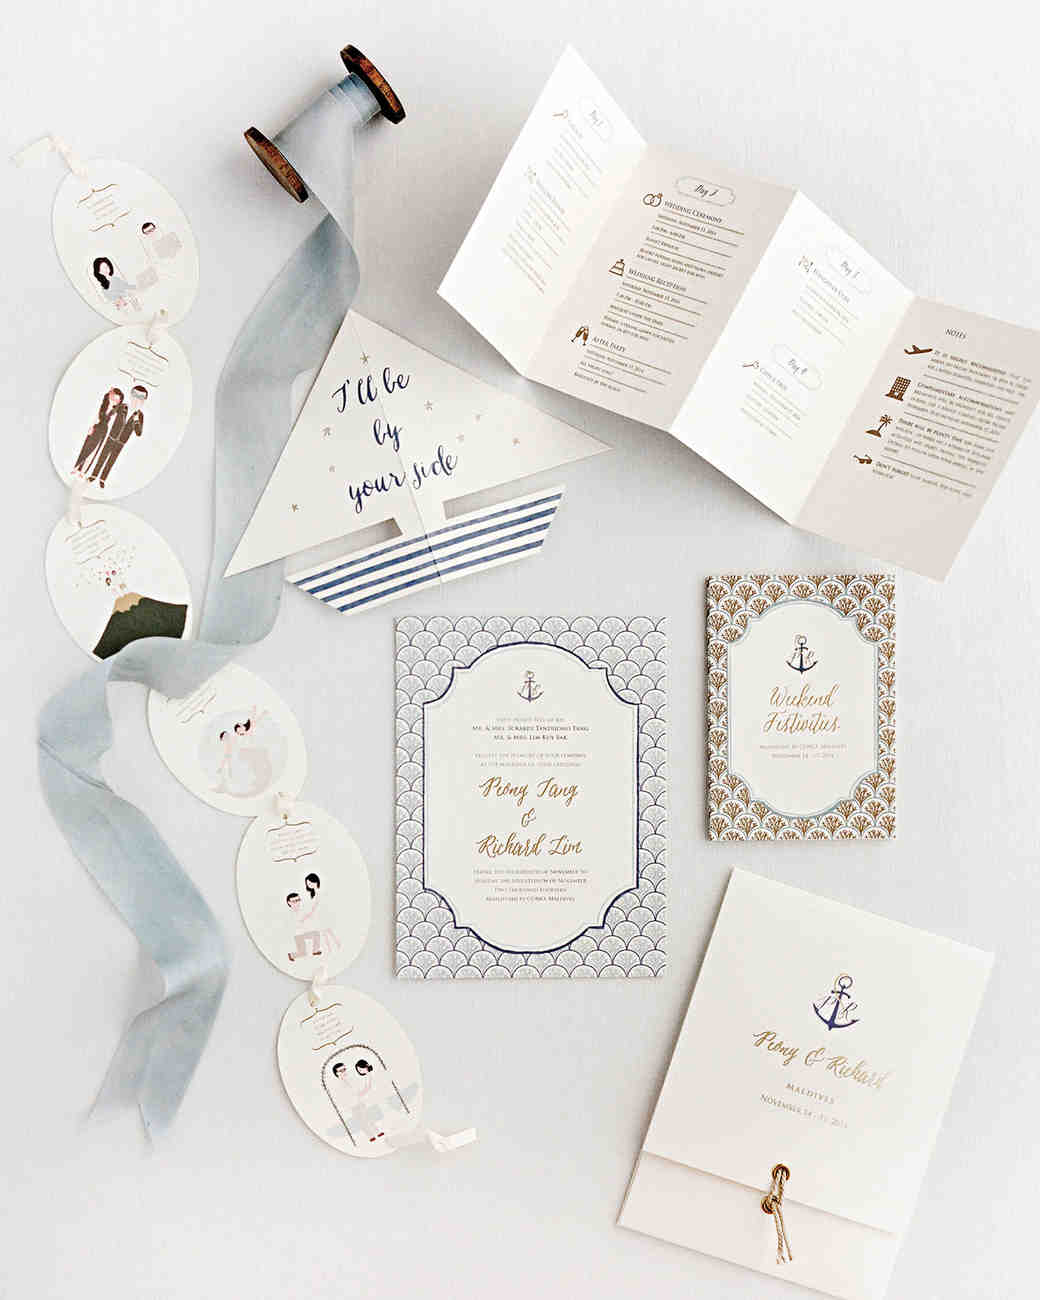 peony-richard-wedding-maldives-stationery-suite-0833-s112383.jpg